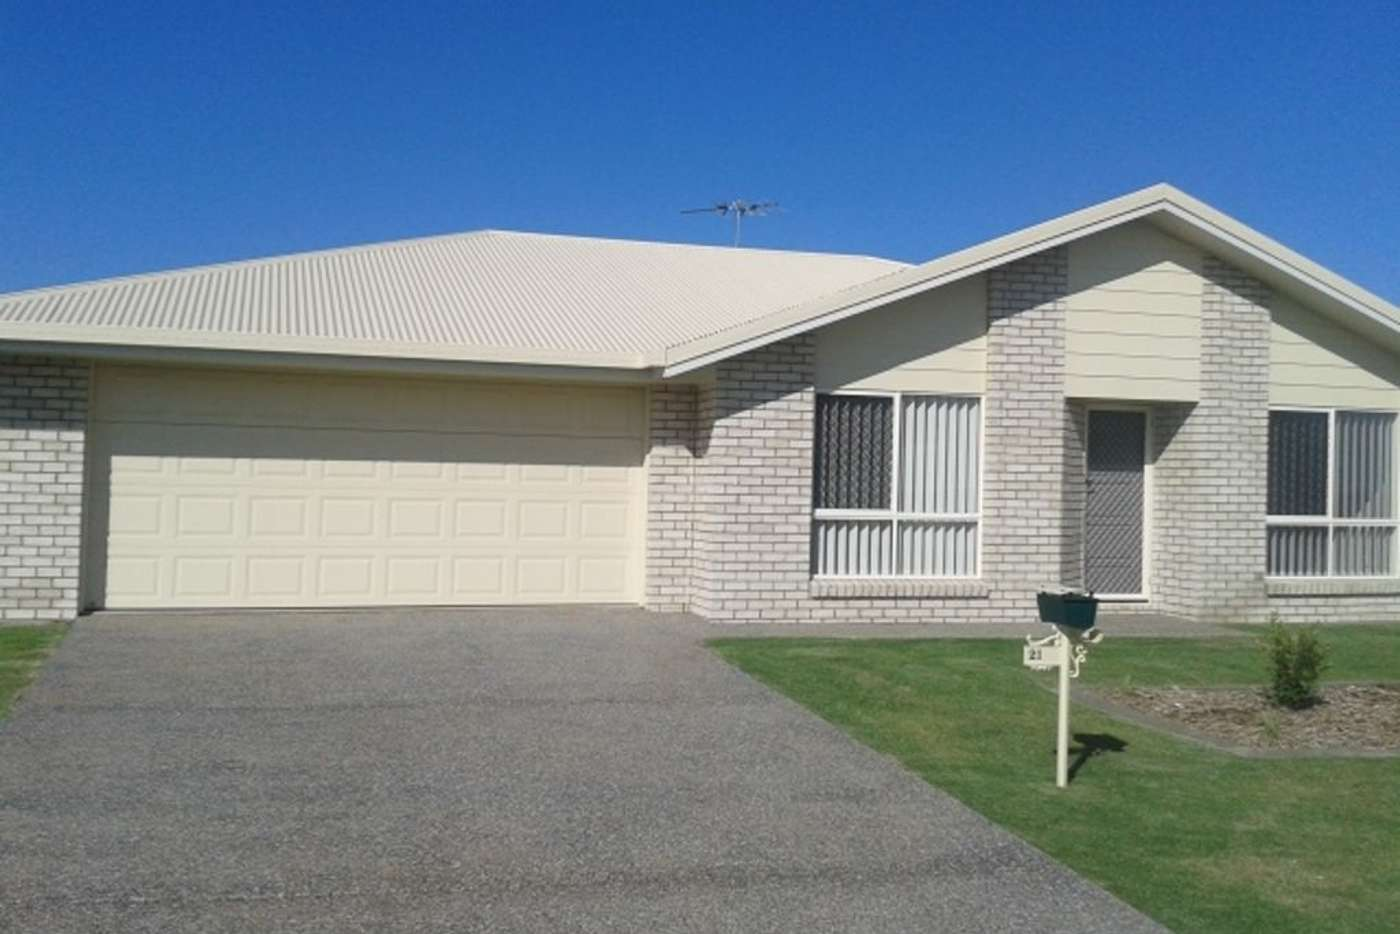 Main view of Homely house listing, 21 Bronco Crescent, Gracemere QLD 4702